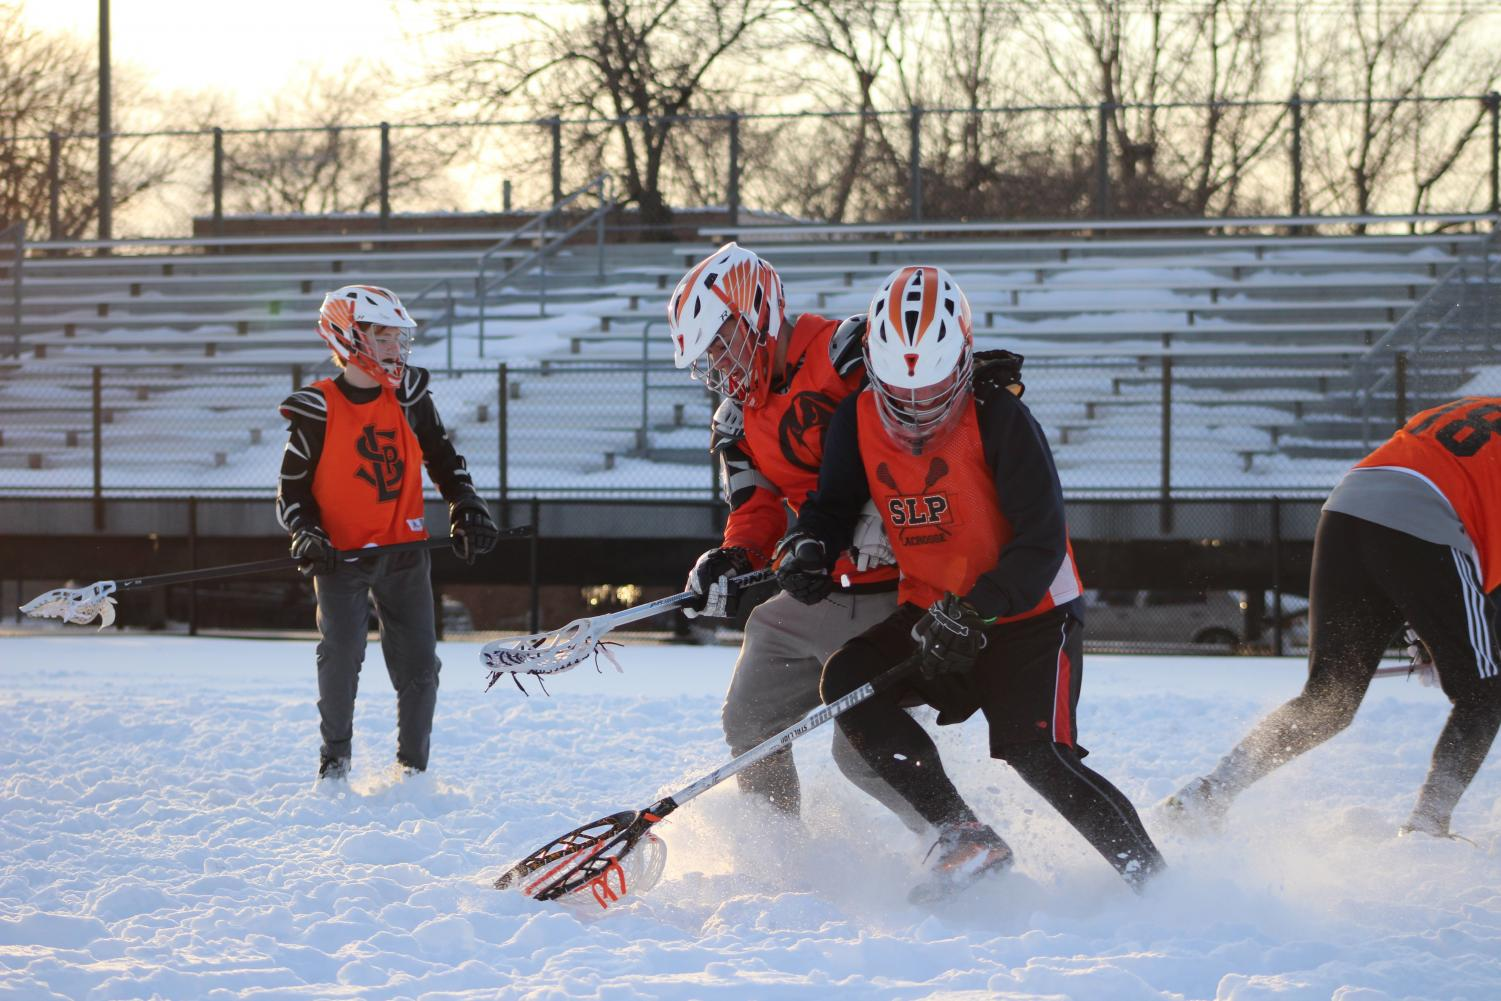 Boys' lacrosse team conducts tryouts despite snow at Park's stadium. Tryouts took place April 2-5.